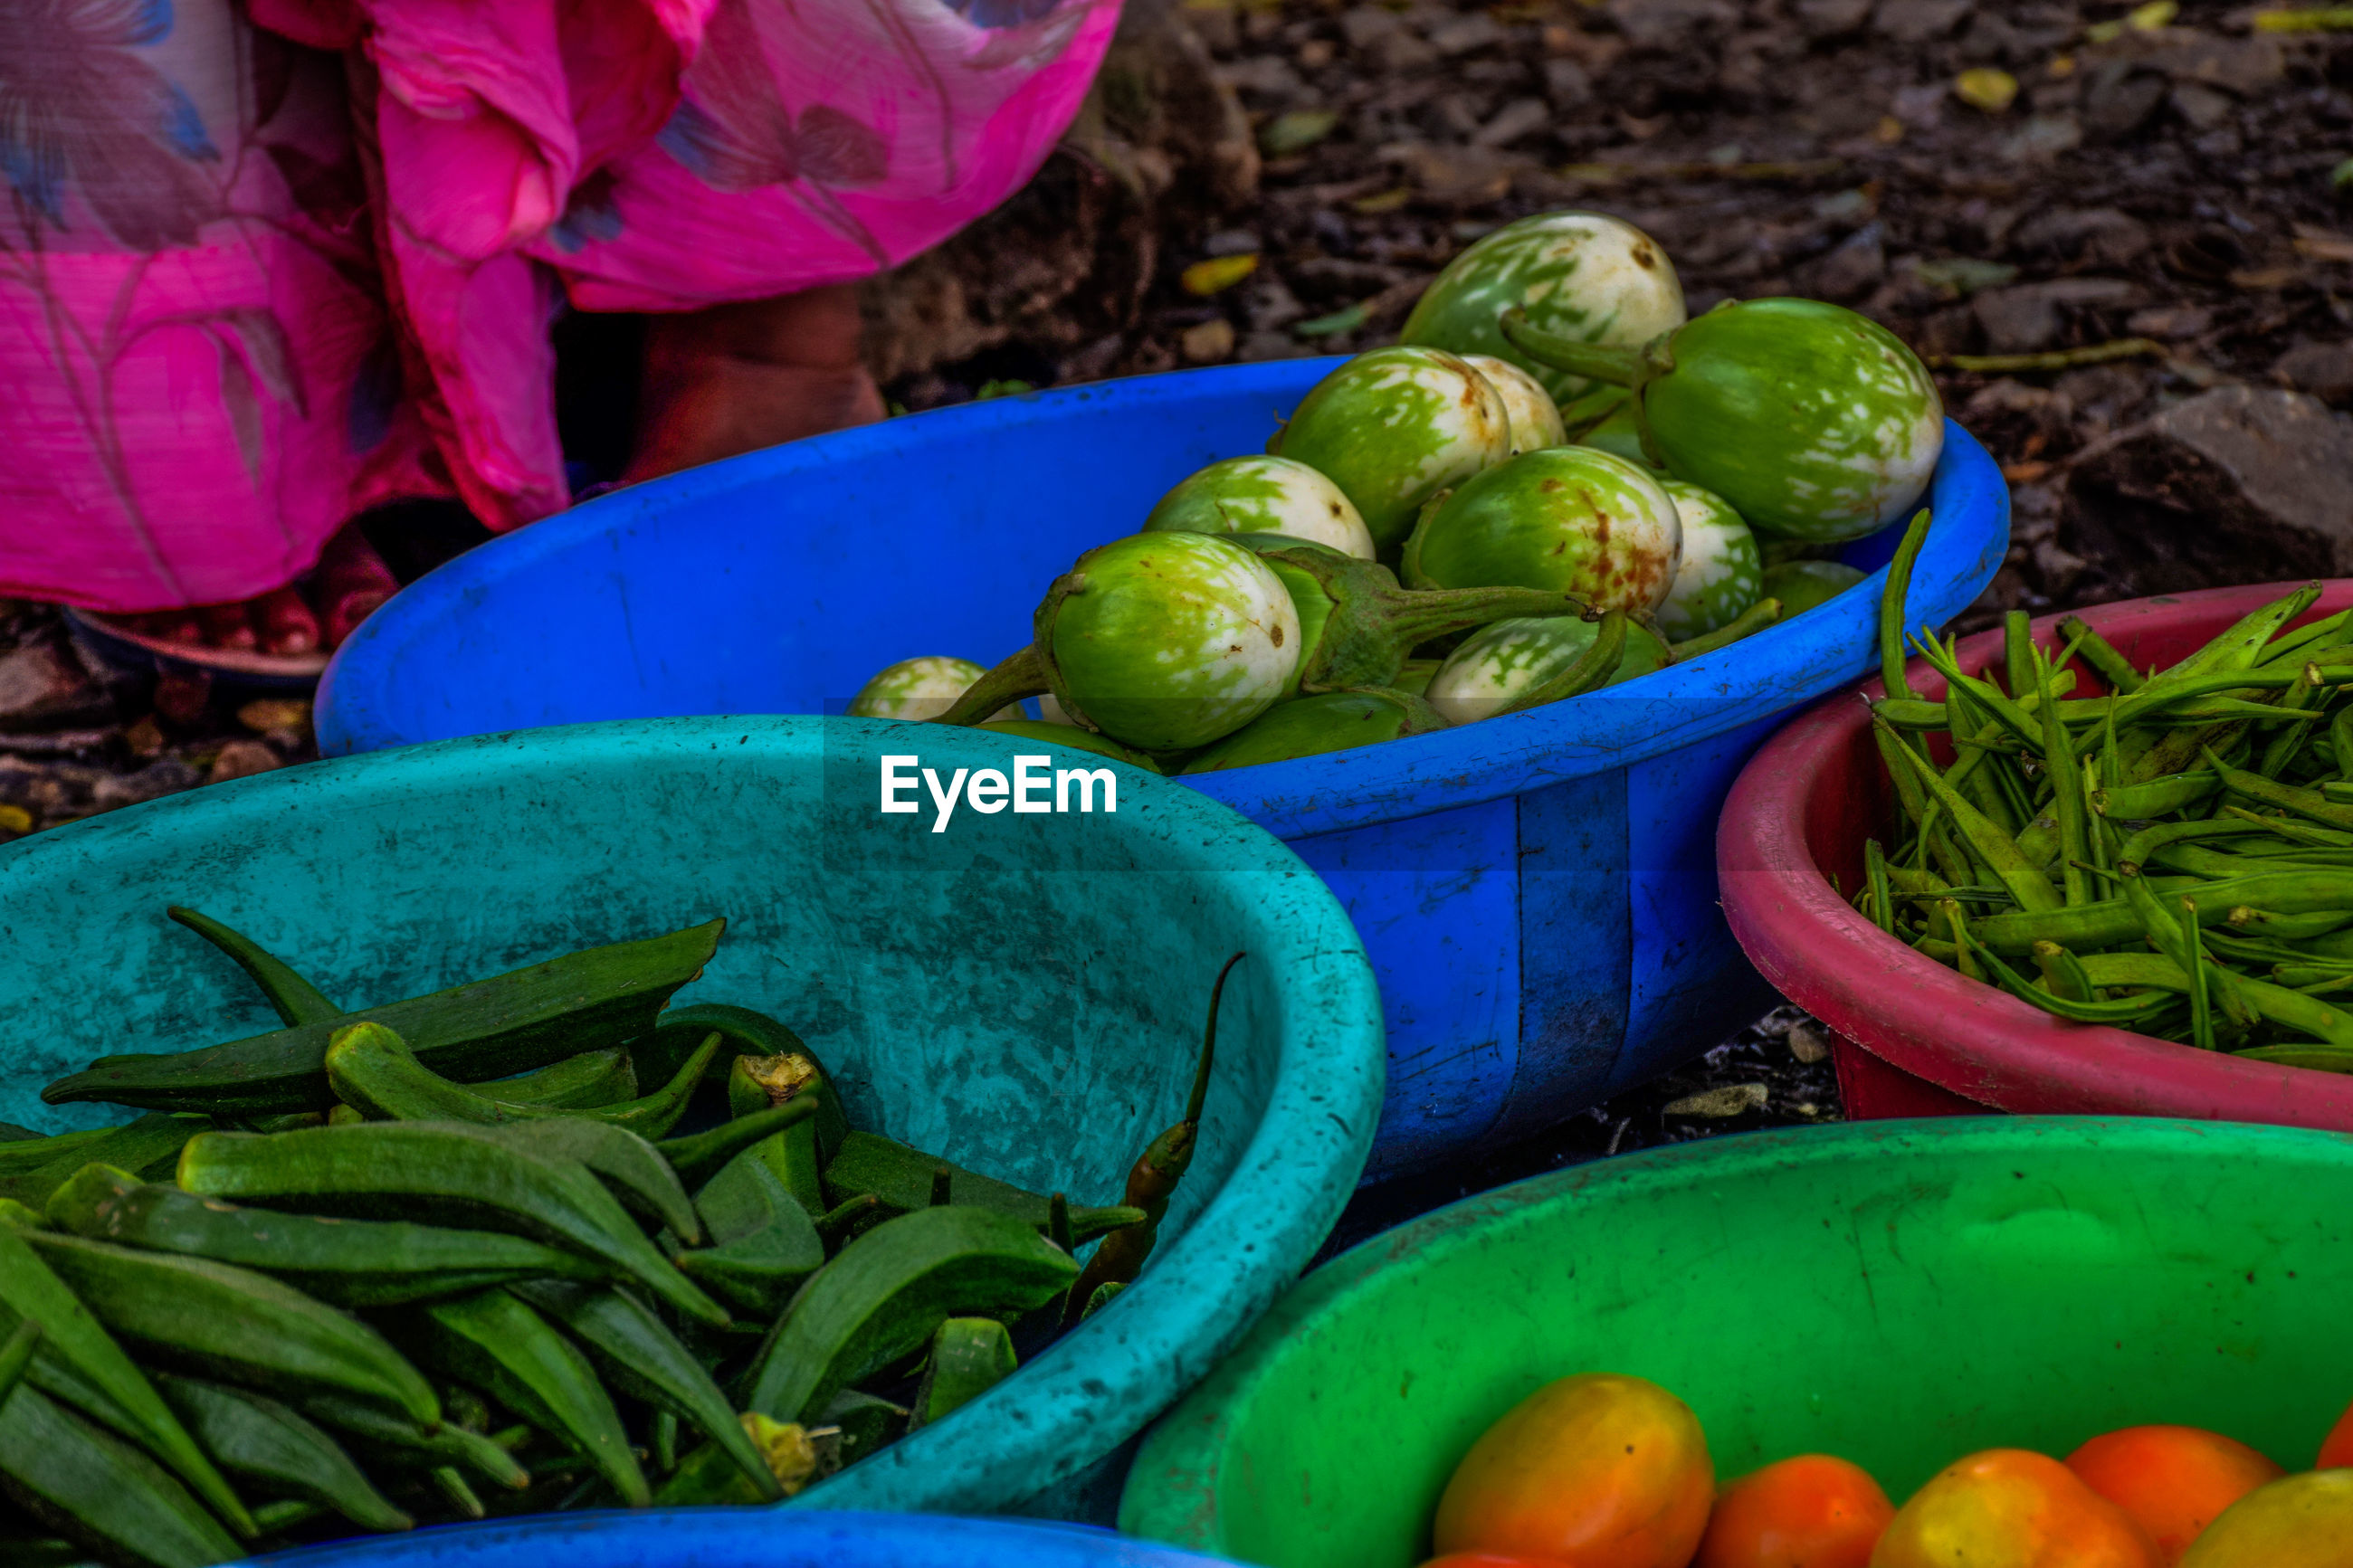 HIGH ANGLE VIEW OF VEGETABLES IN MARKET